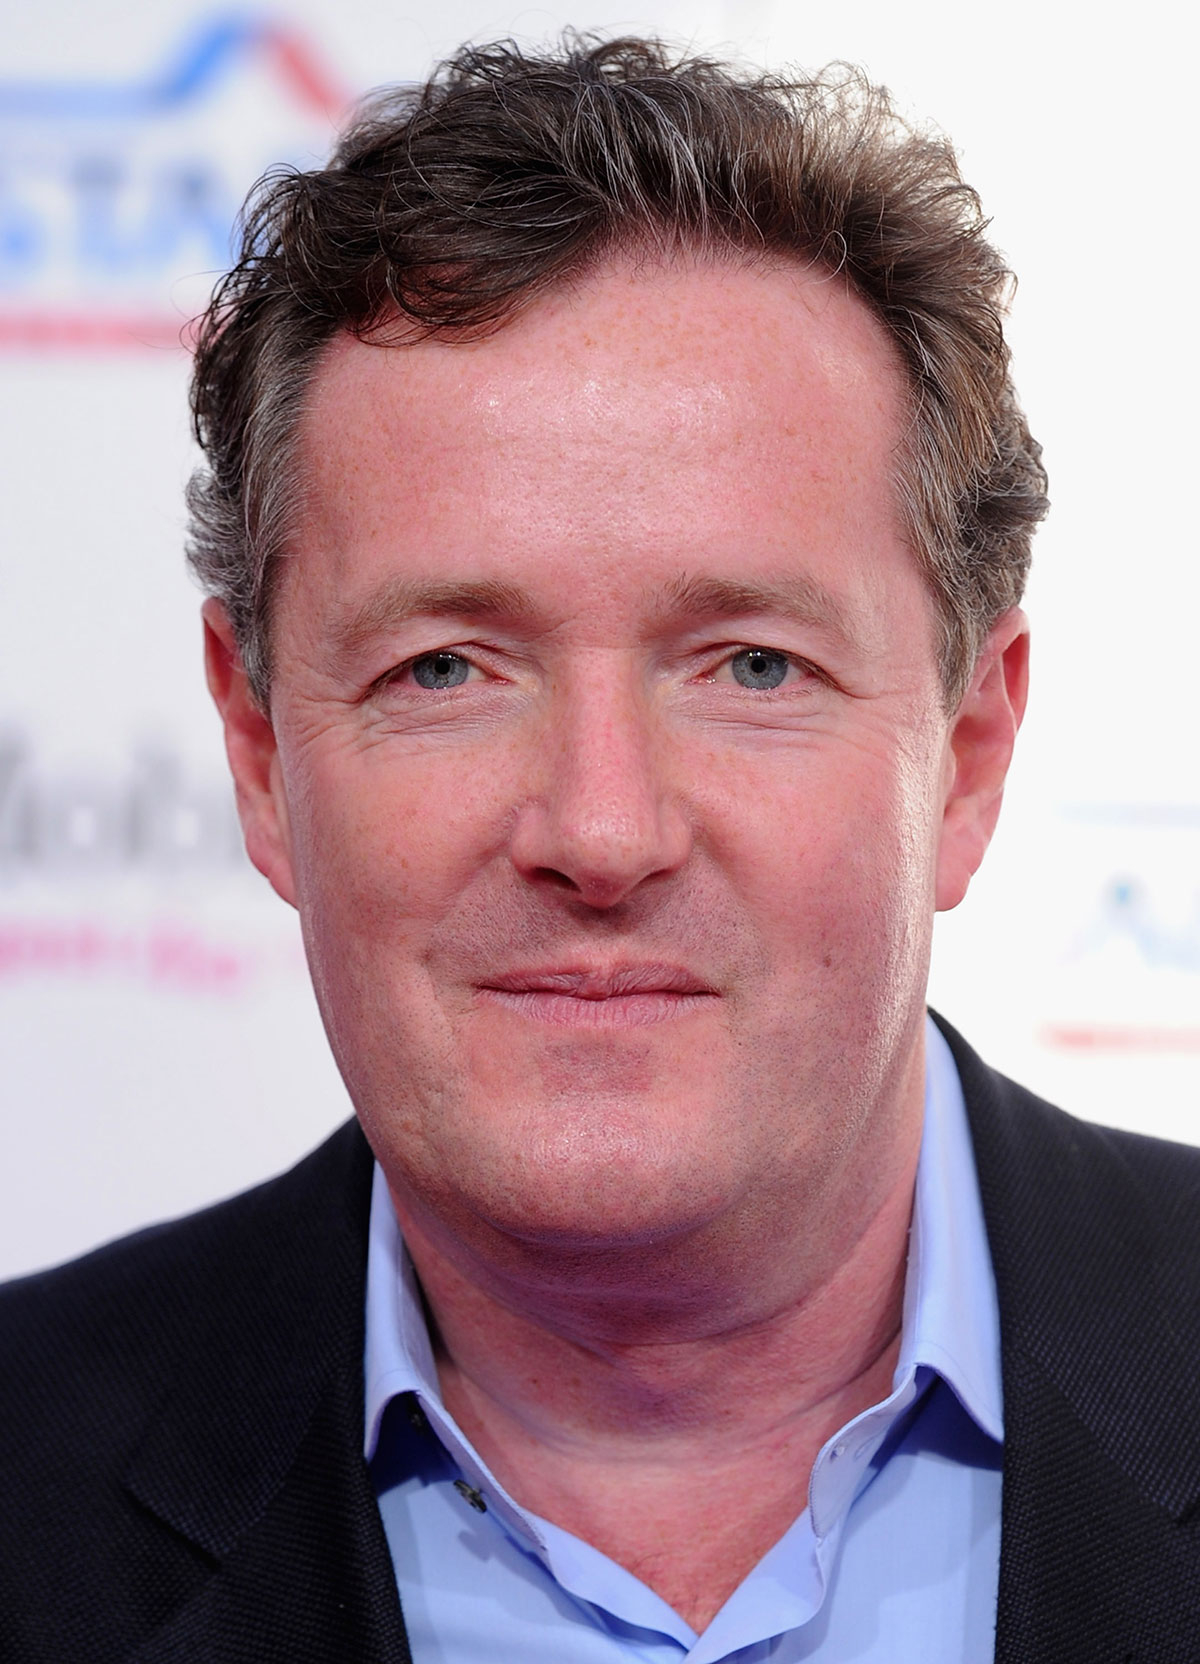 Outspoken Piers Morgan questioned Lady Gaga and Madonna's rape claims